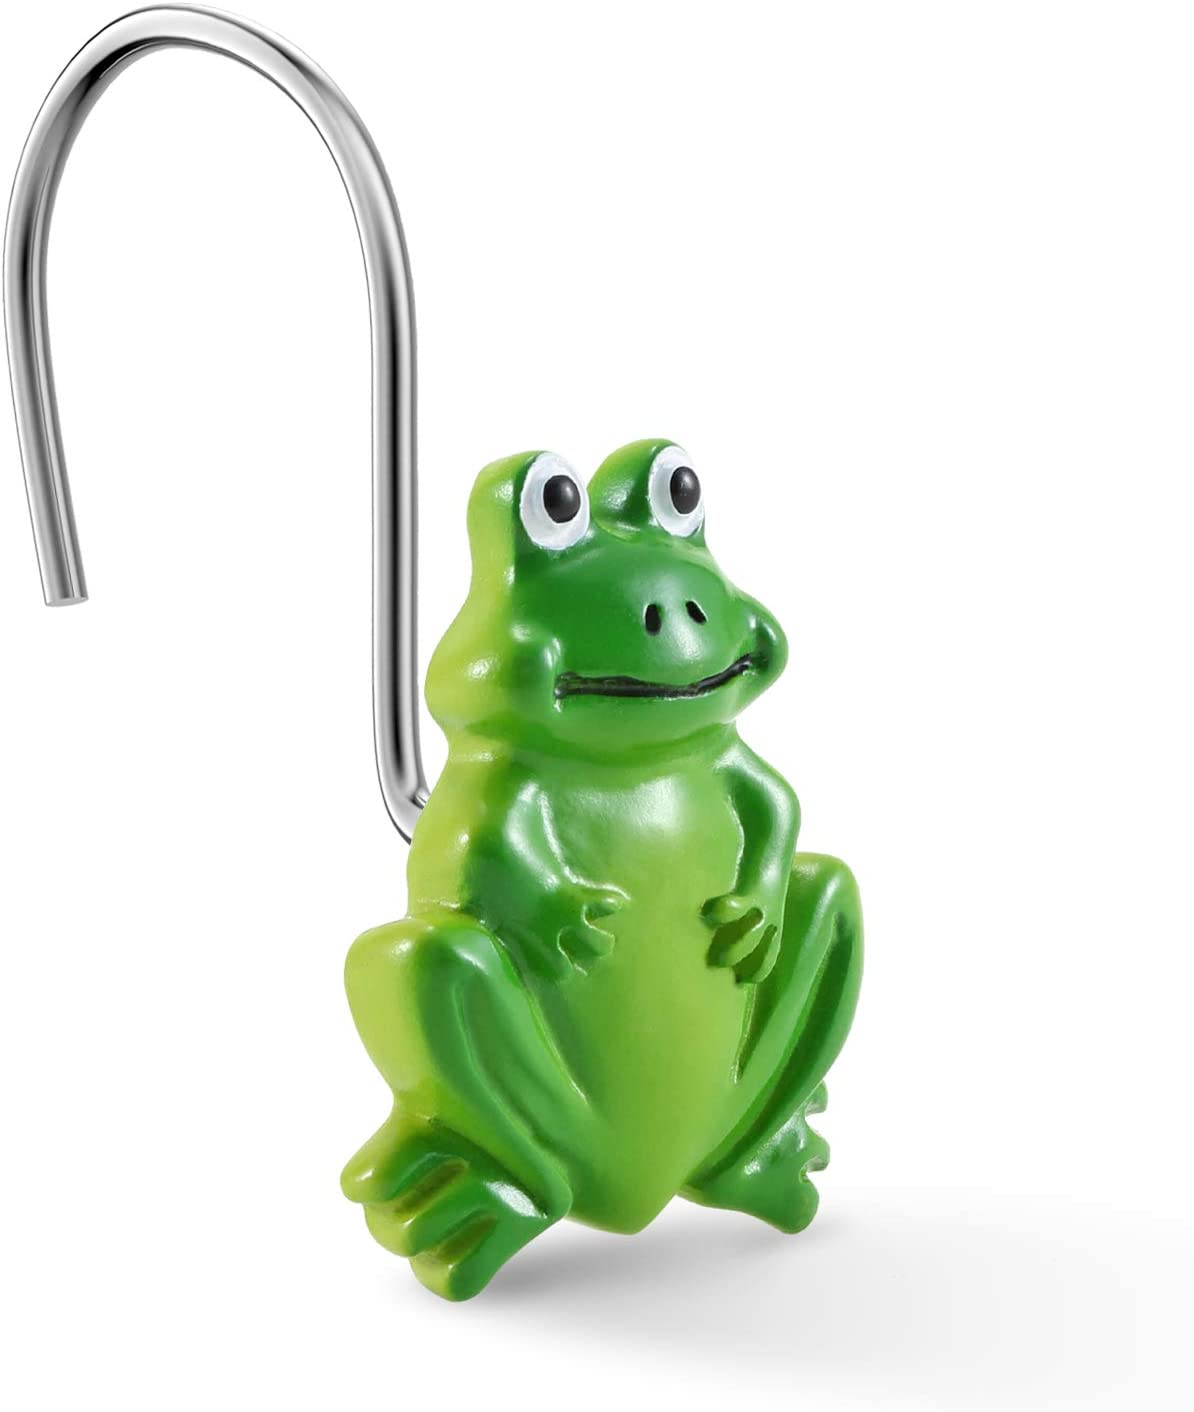 CHICTIE Frog Shower Curtain Hooks Rings Green Decorati 12 of Ranking Cheap bargain TOP4 Set